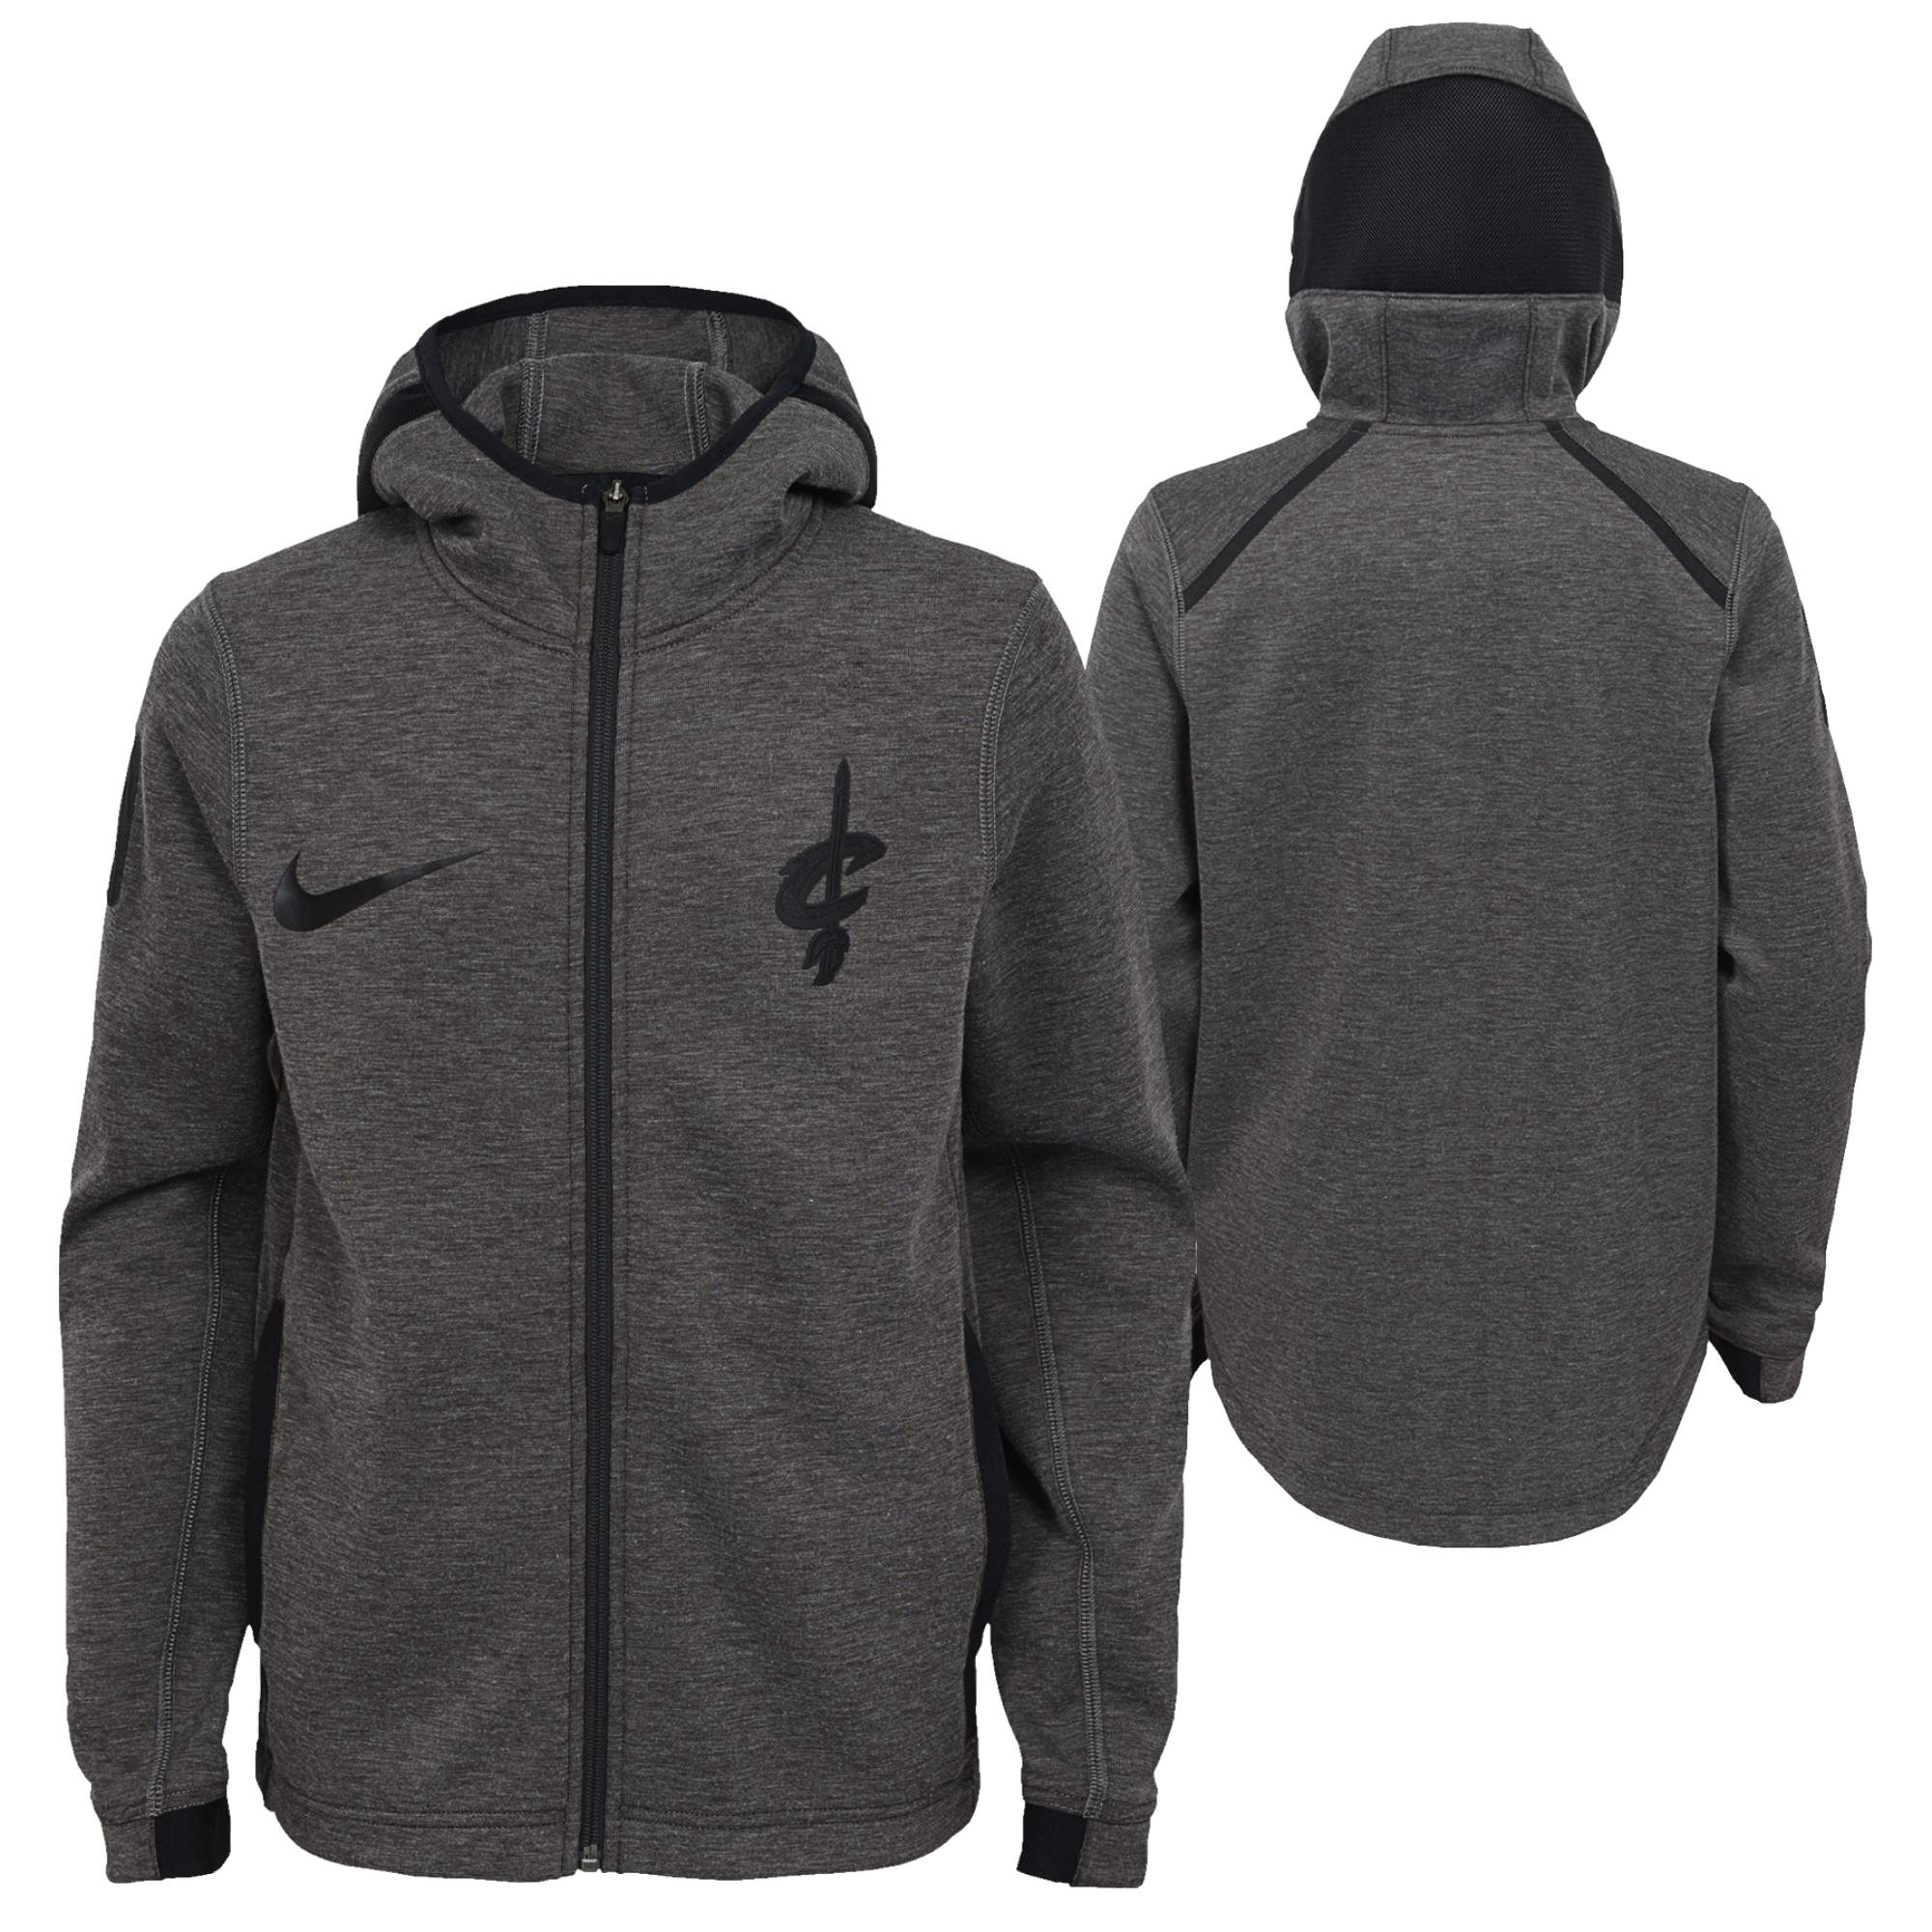 Outerstuff EMEA Ltd / Cleveland Cavaliers Nike Showtime Therma Flex Hoodie - Youth